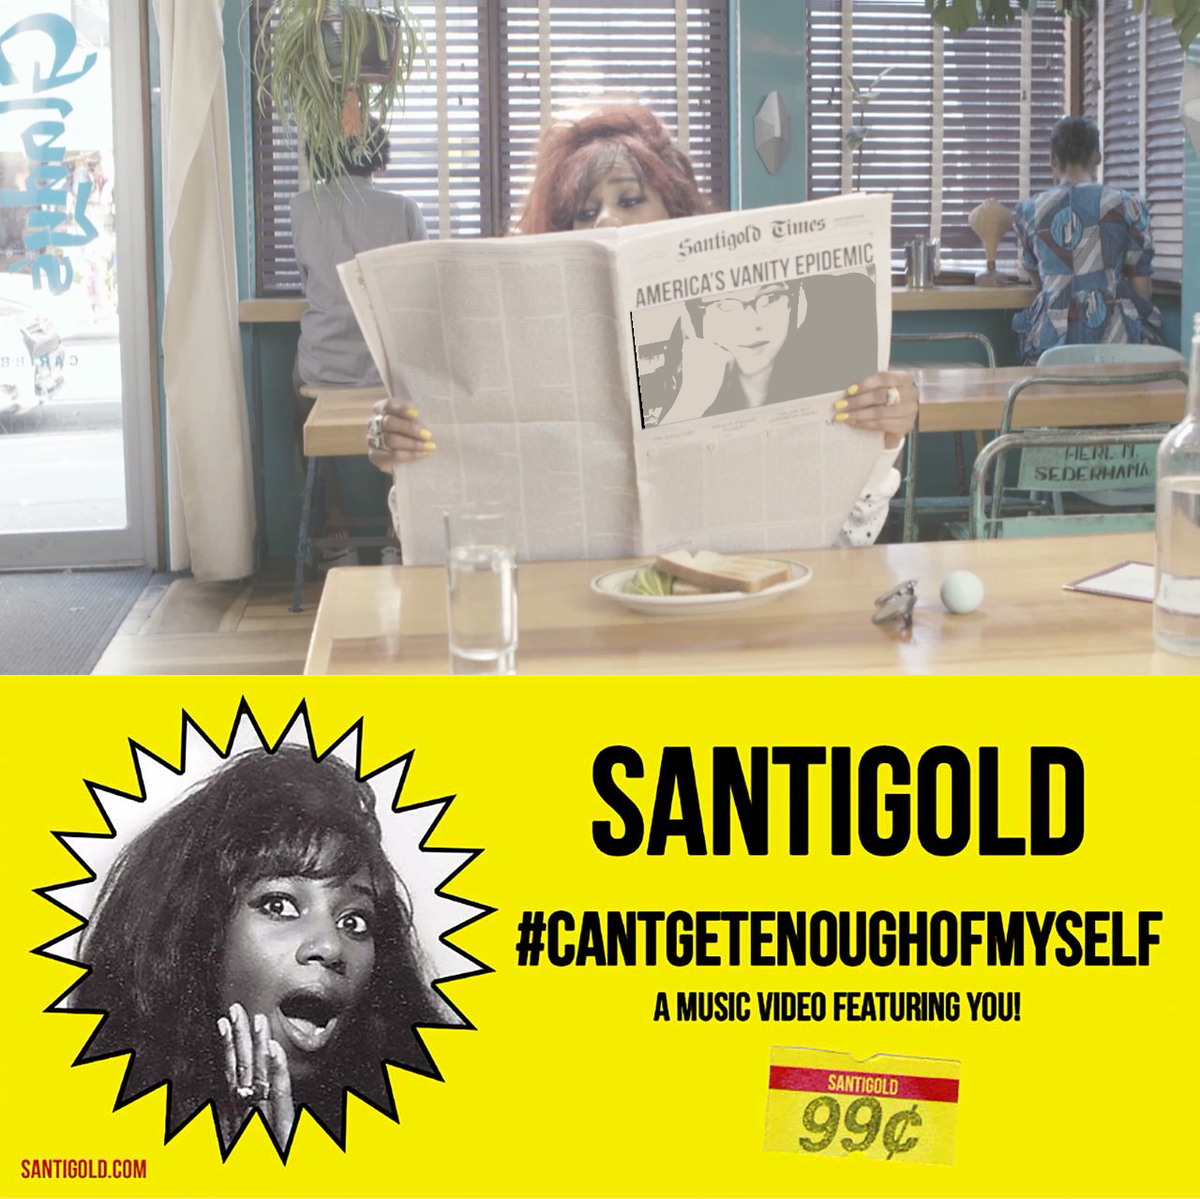 .@Santigold changing the game with this interactive webcam video. #CantGetEnoughOfMyself https://t.co/leVKJOq9n9